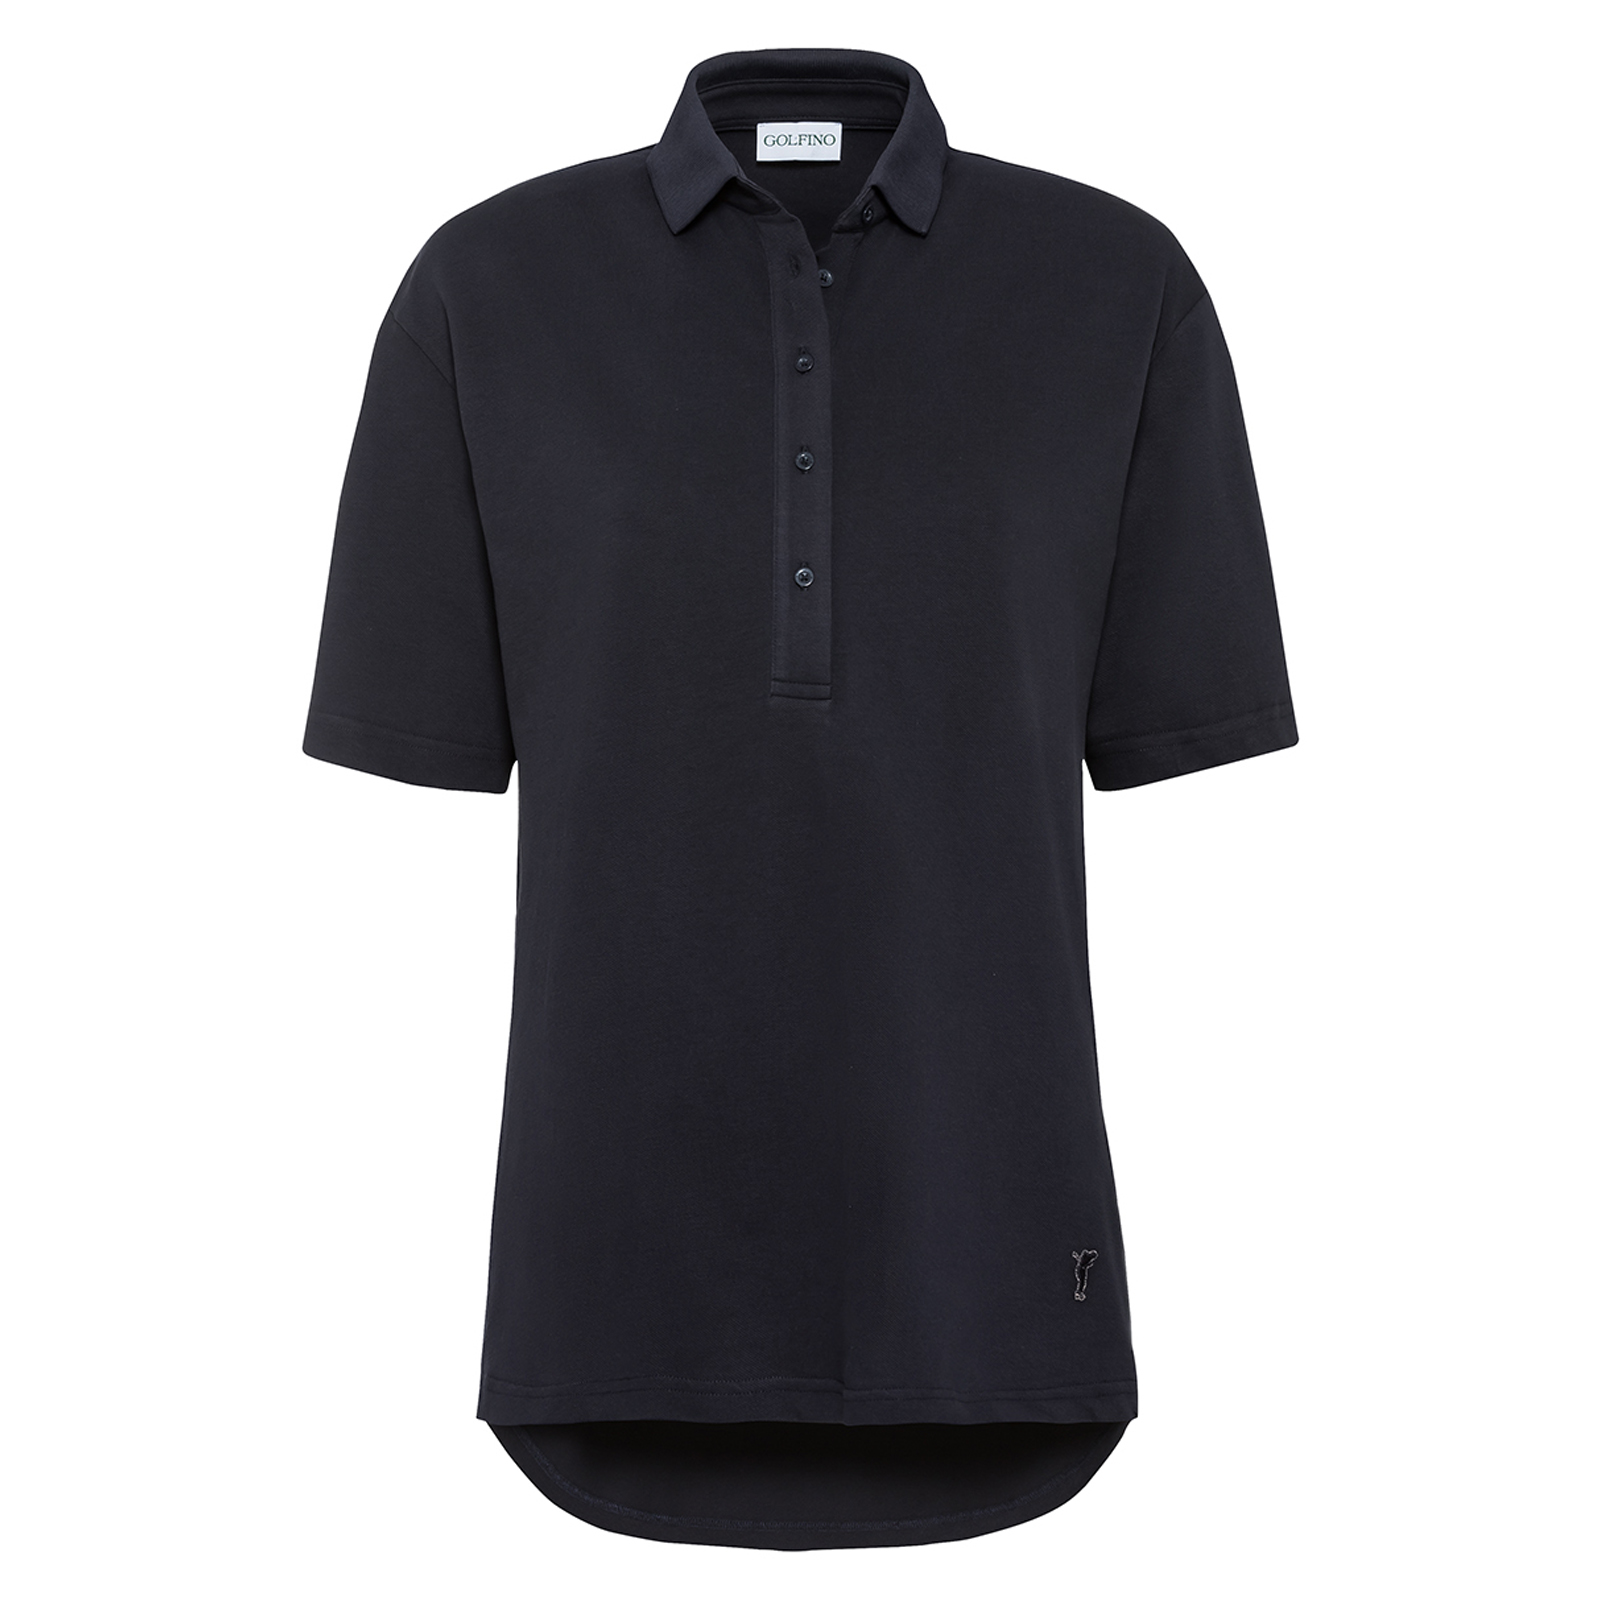 Damen Kurzarm Polo Shirt Extra Stretch Komfort aus Baumwoll-Mix